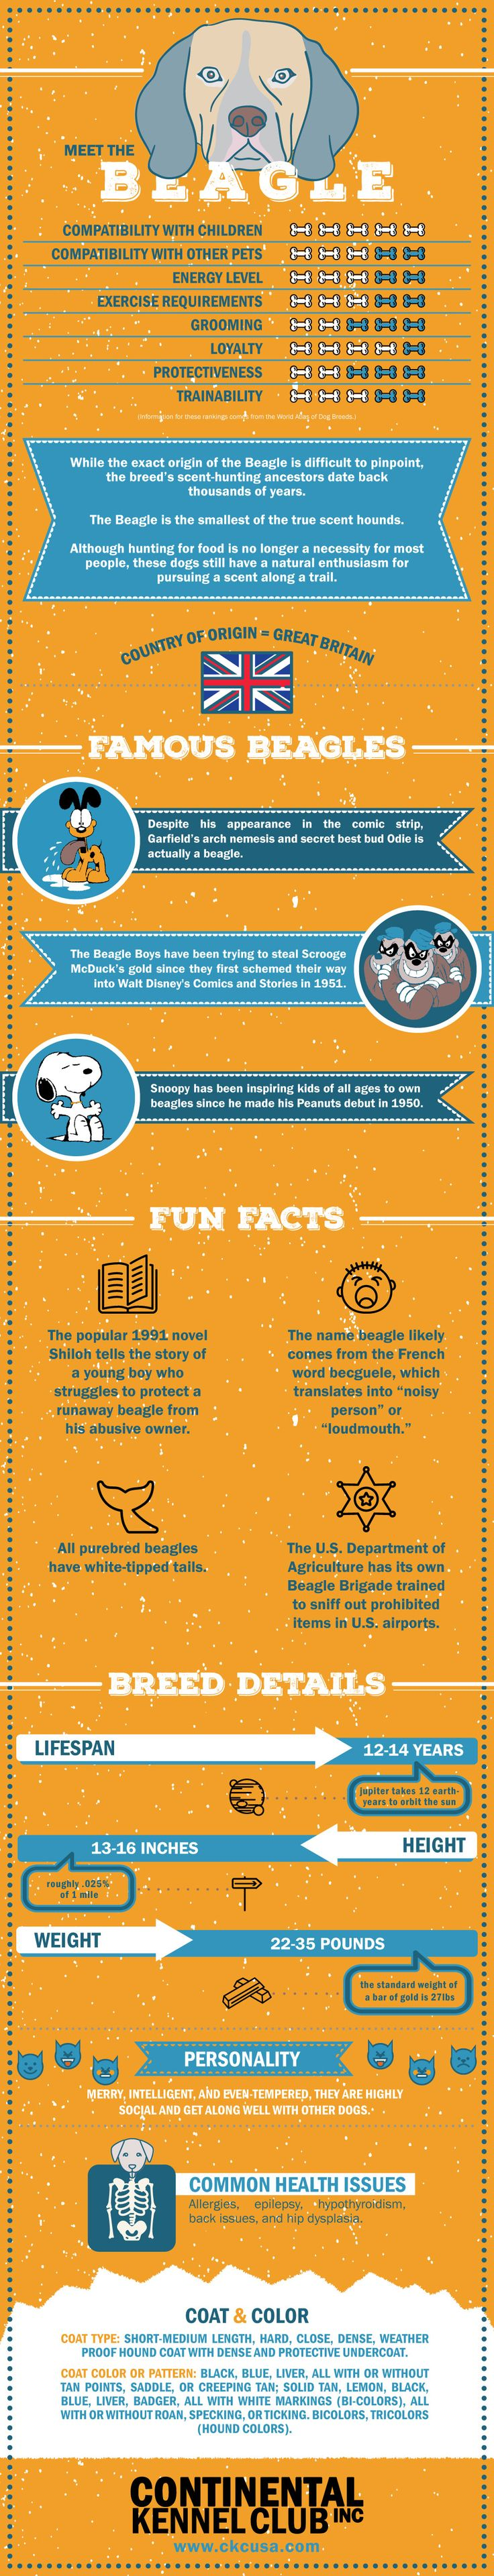 Beagle Breed Information Infographic                                                                                                                                                                                 More